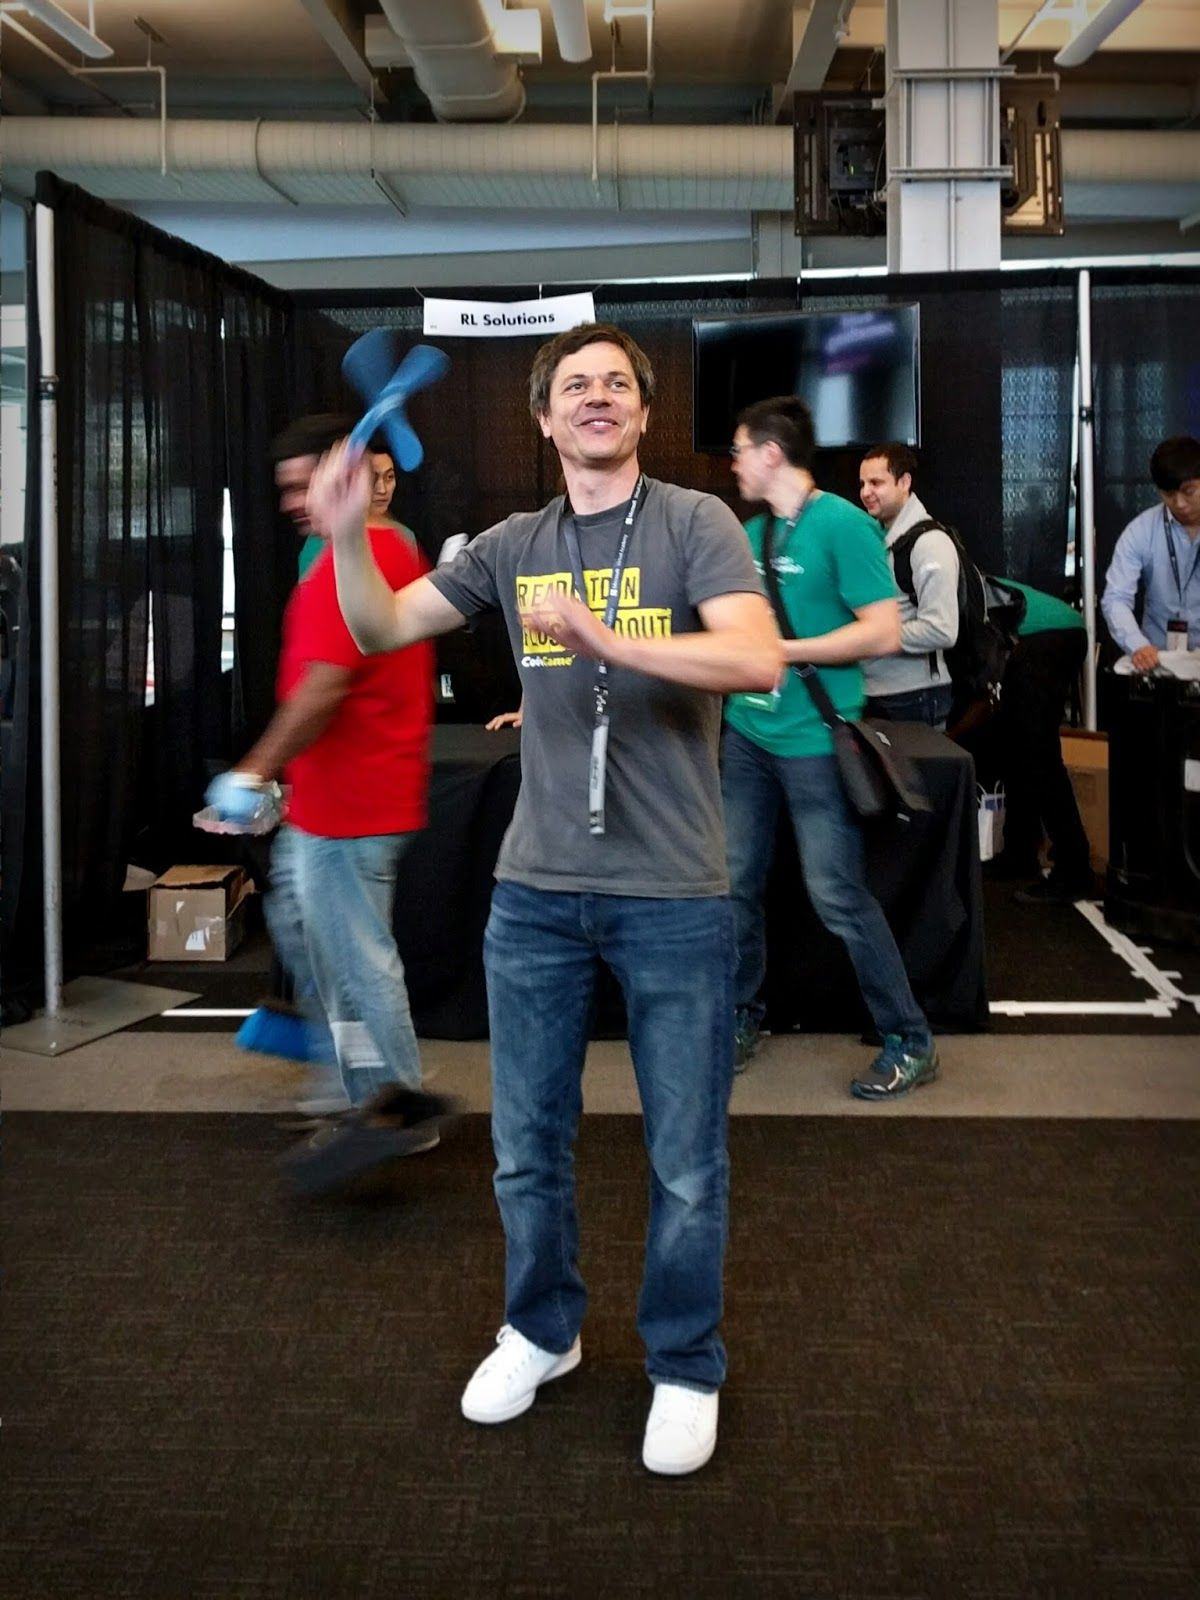 Tom with a boomerang at DeveloperWeek